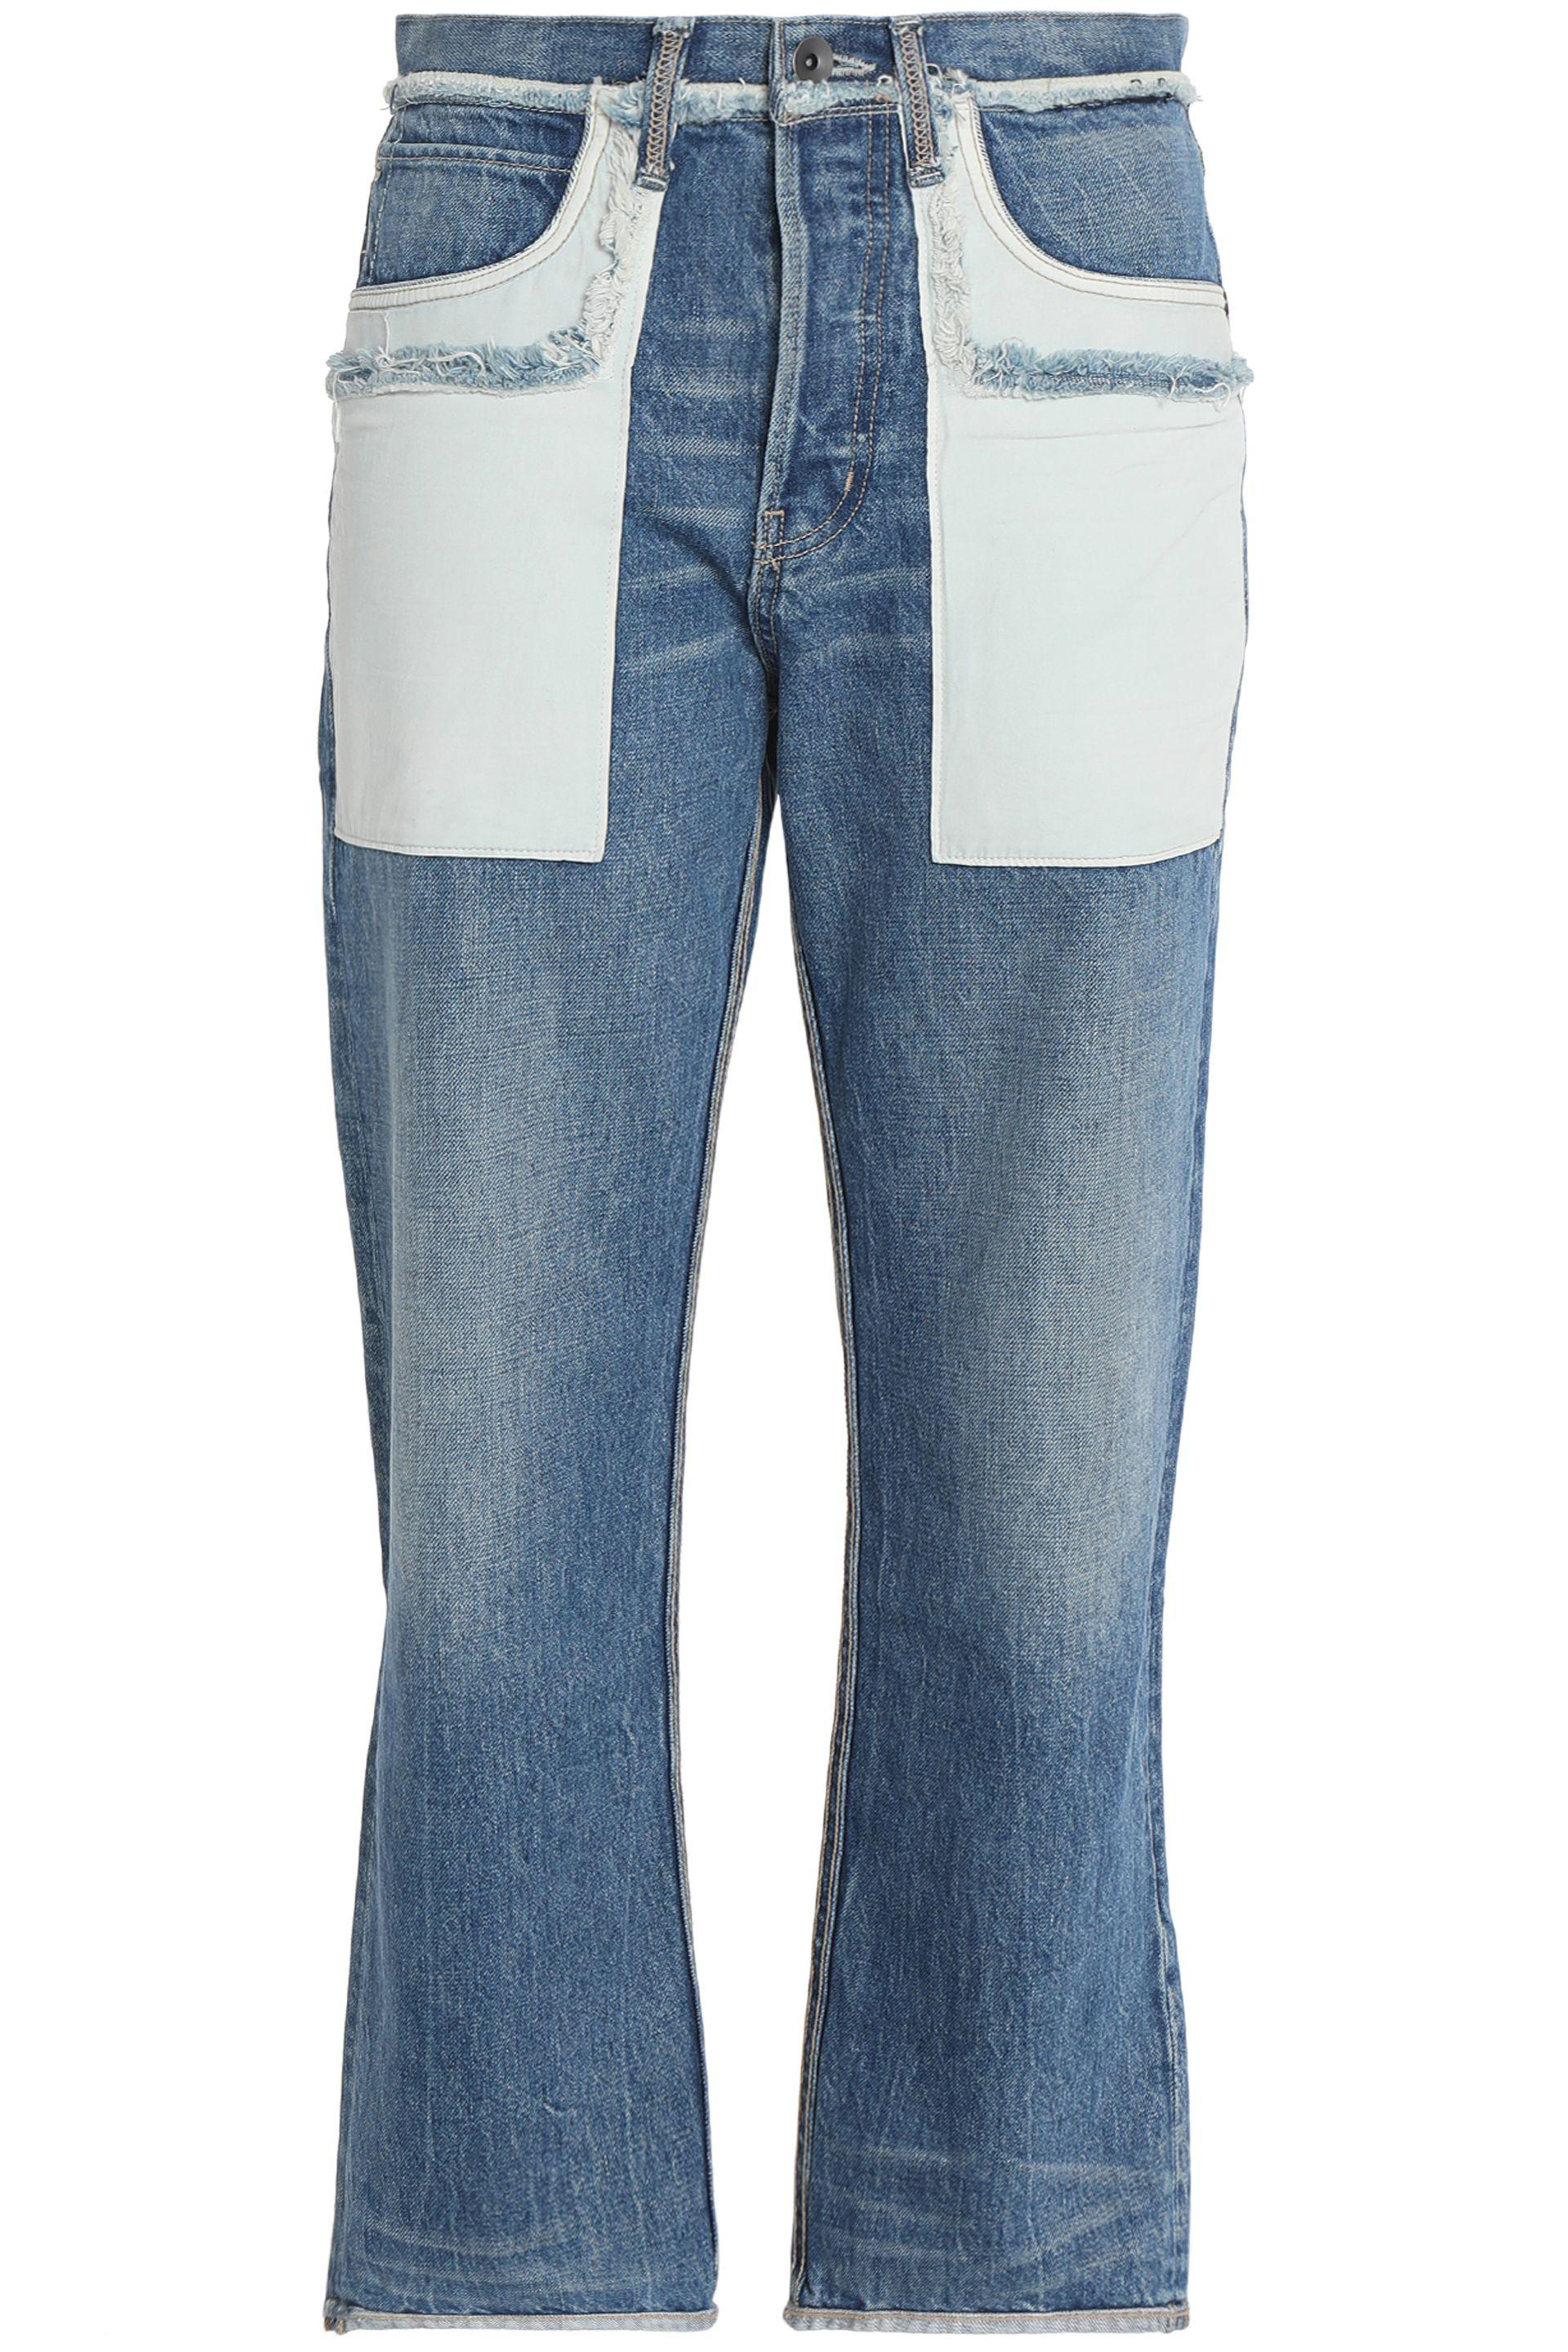 Helmut Lang Woman Faded High-rise Flared Jeans Light Denim Size 30 Helmut Lang Sale Low Shipping Eb617l